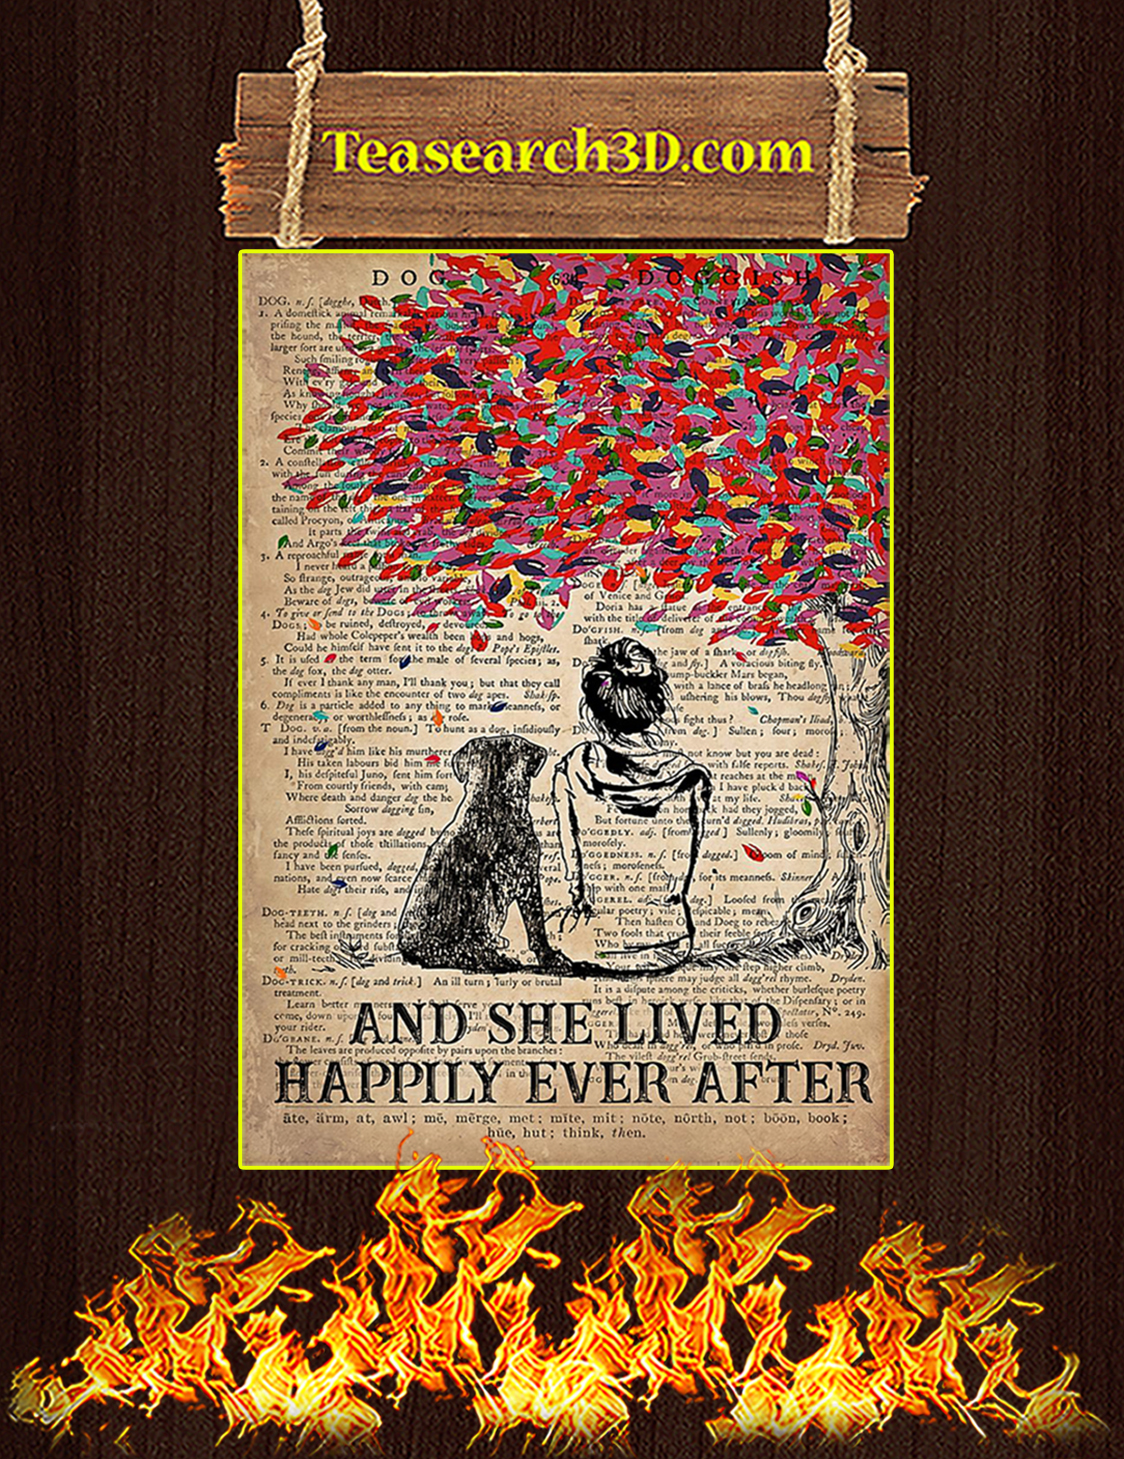 Dog labrador and she lived happily ever after poster A3